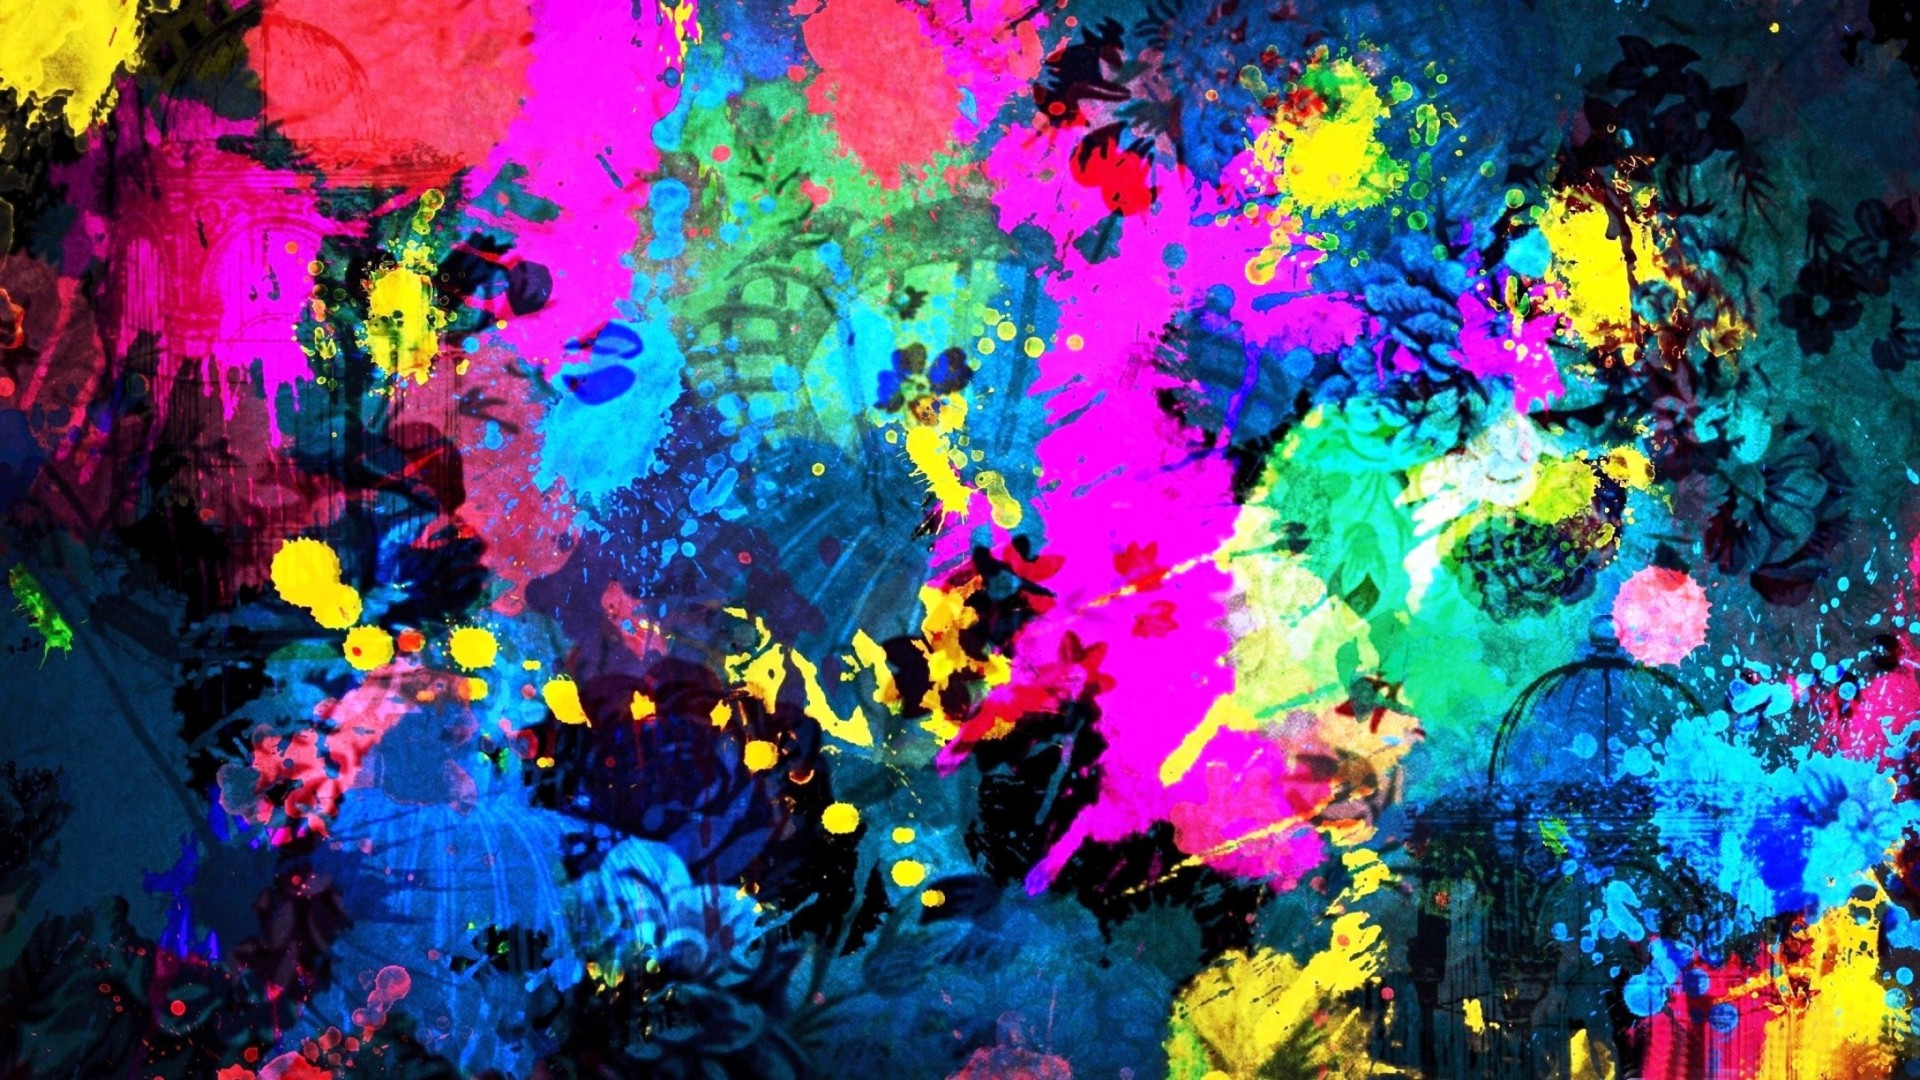 Cool Abstract Art Backgrounds HD Wallpaper